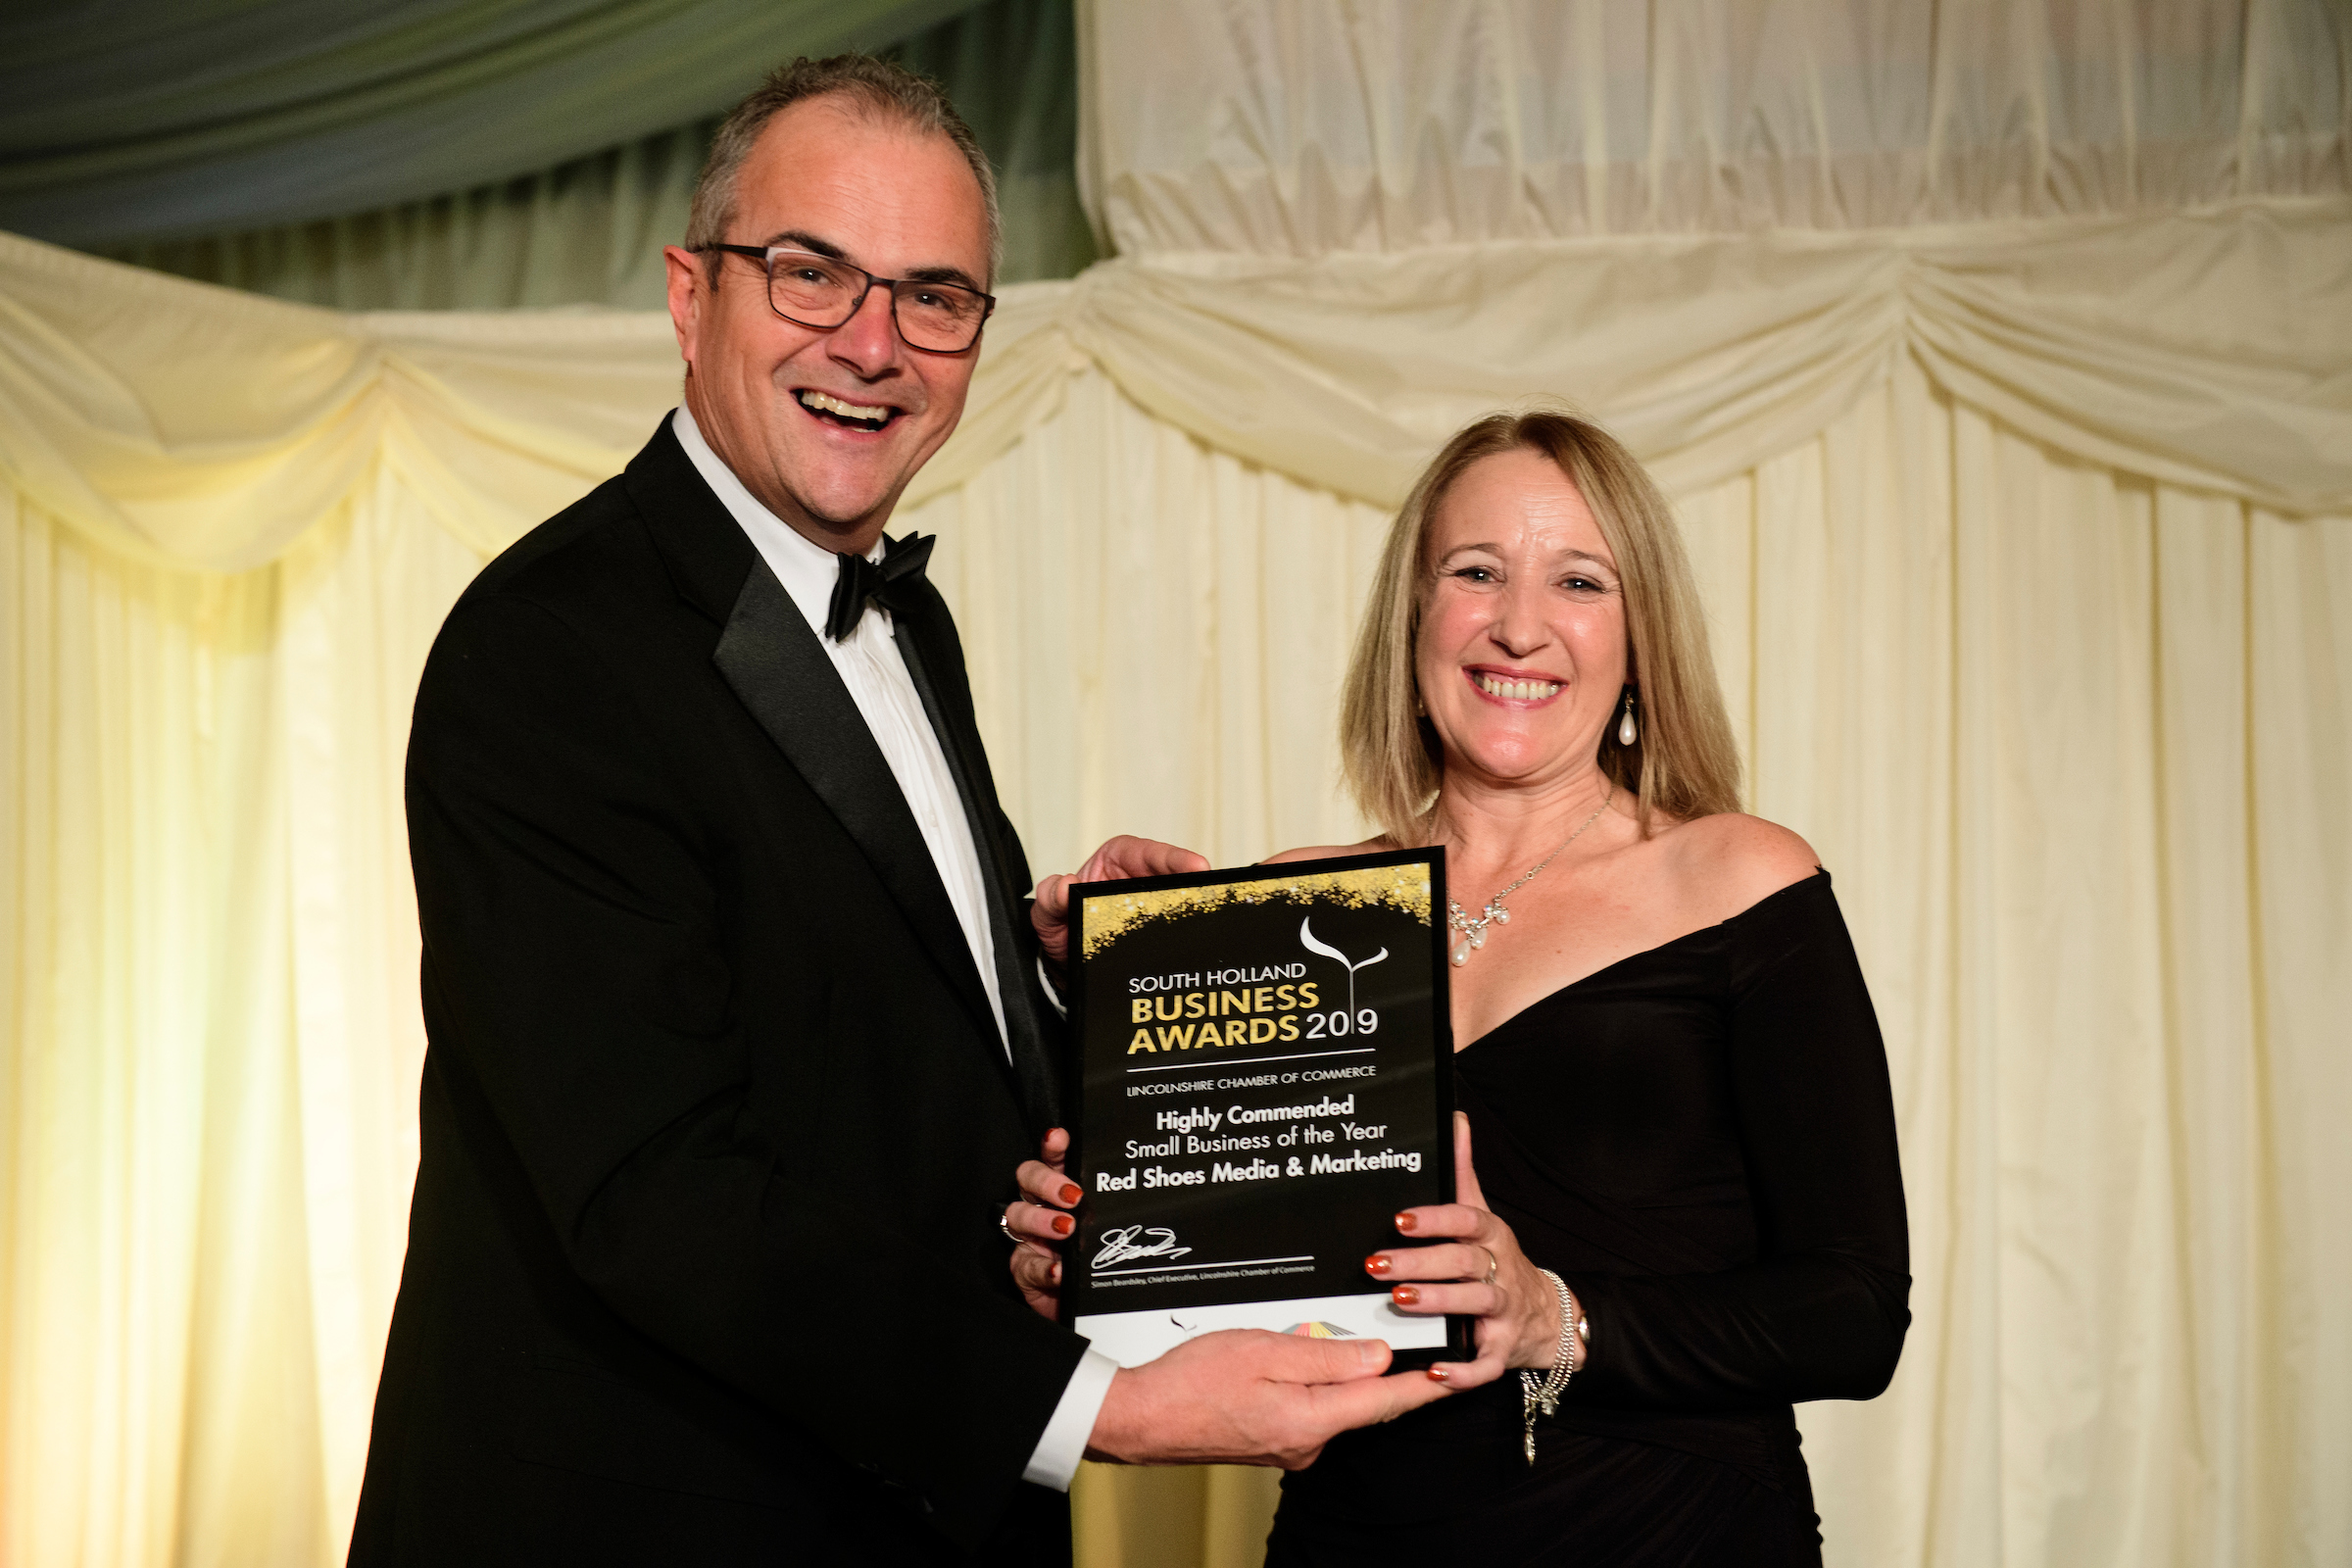 A man and a woman in formal eveningwear at the South Holland Business Awards 2019, holding a framed certificate